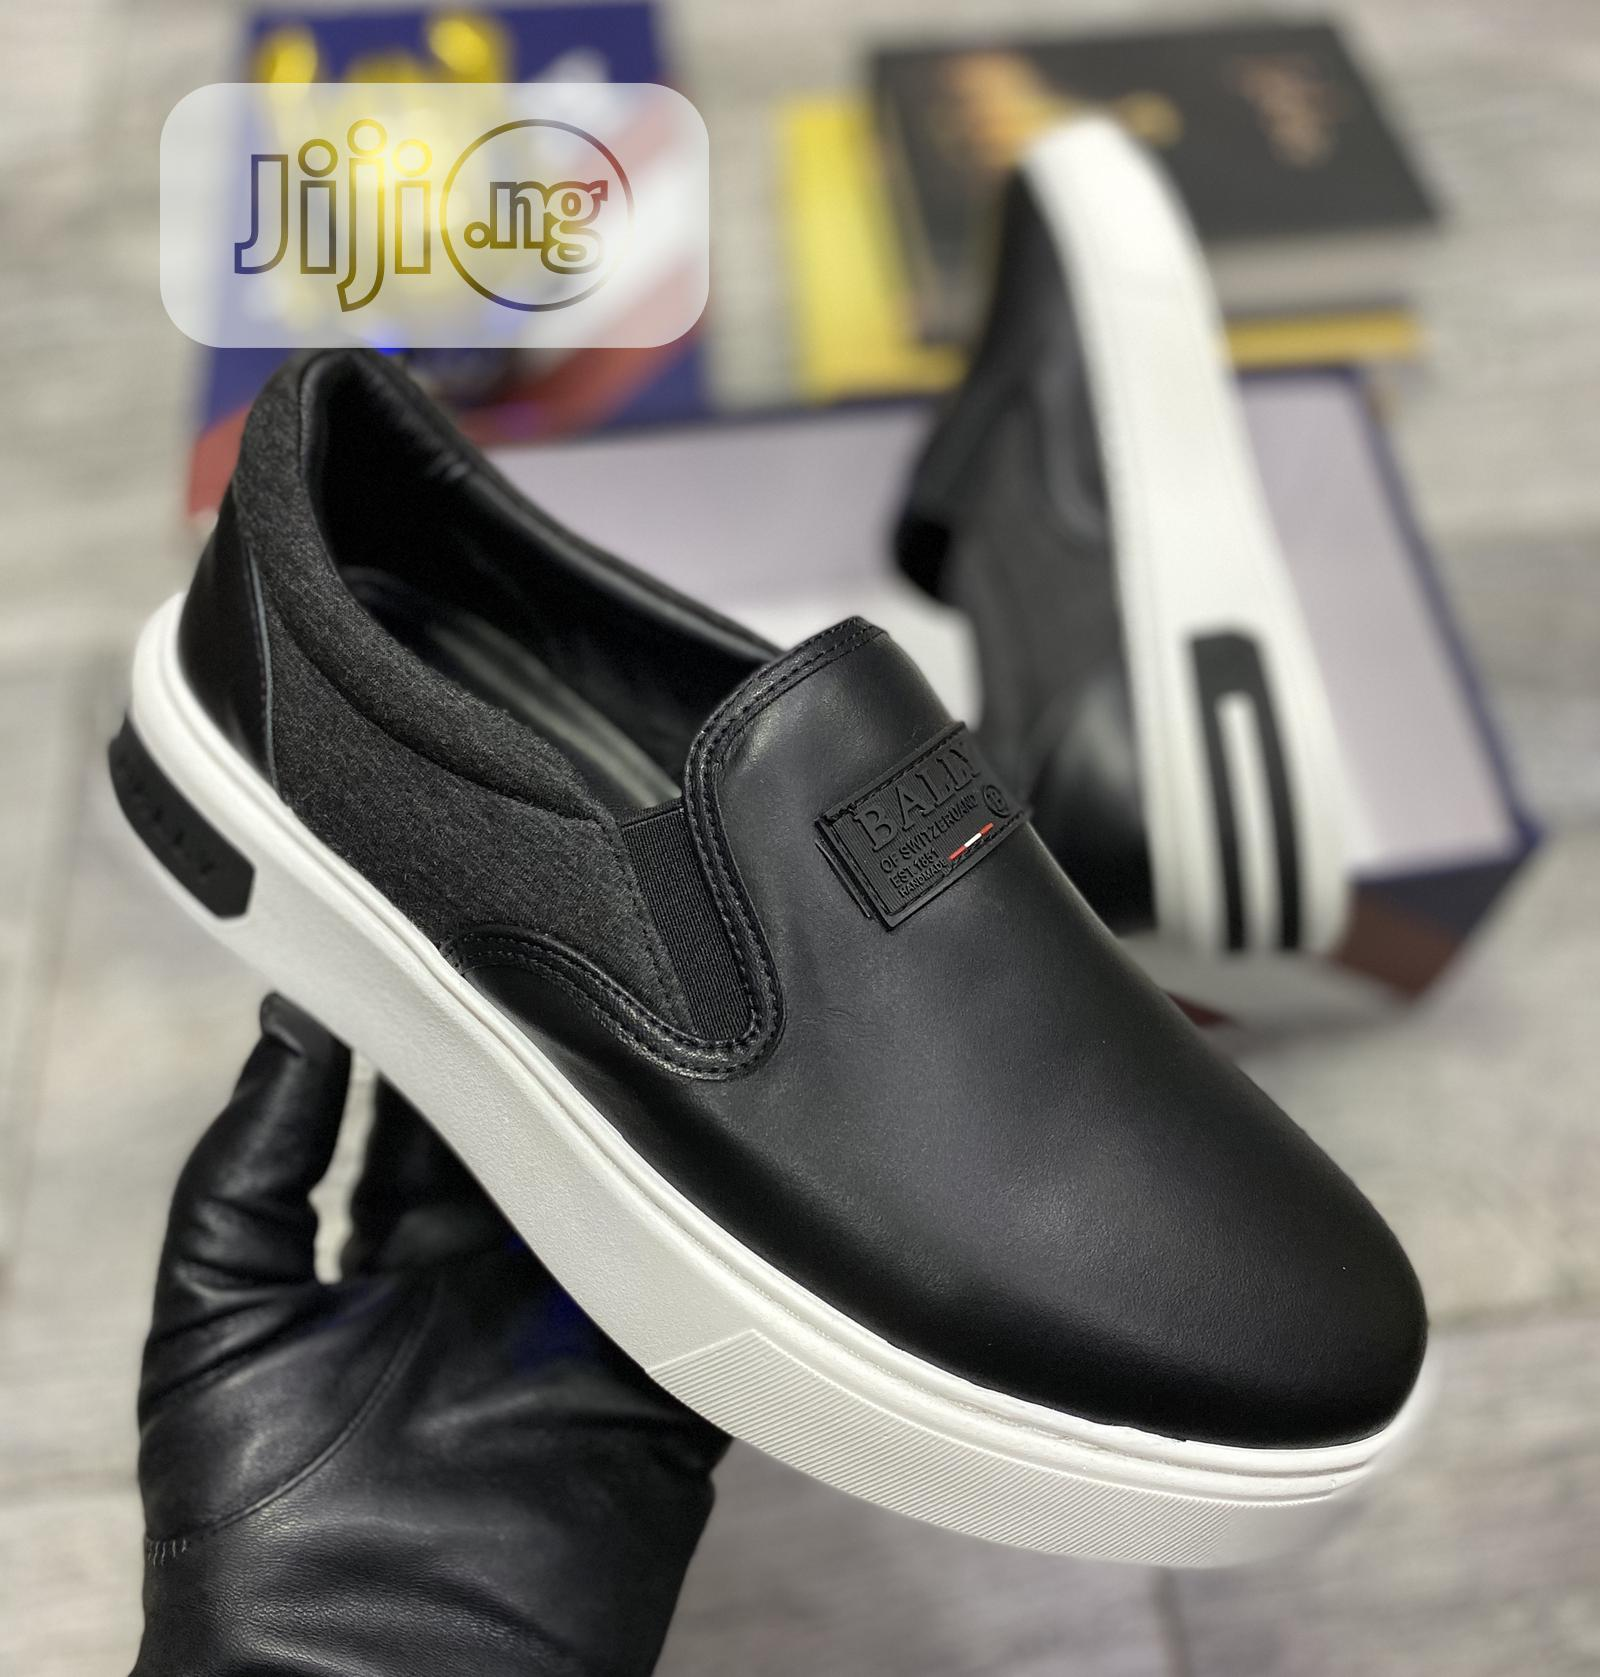 Bally-Made in Switzerland | Shoes for sale in Surulere, Lagos State, Nigeria